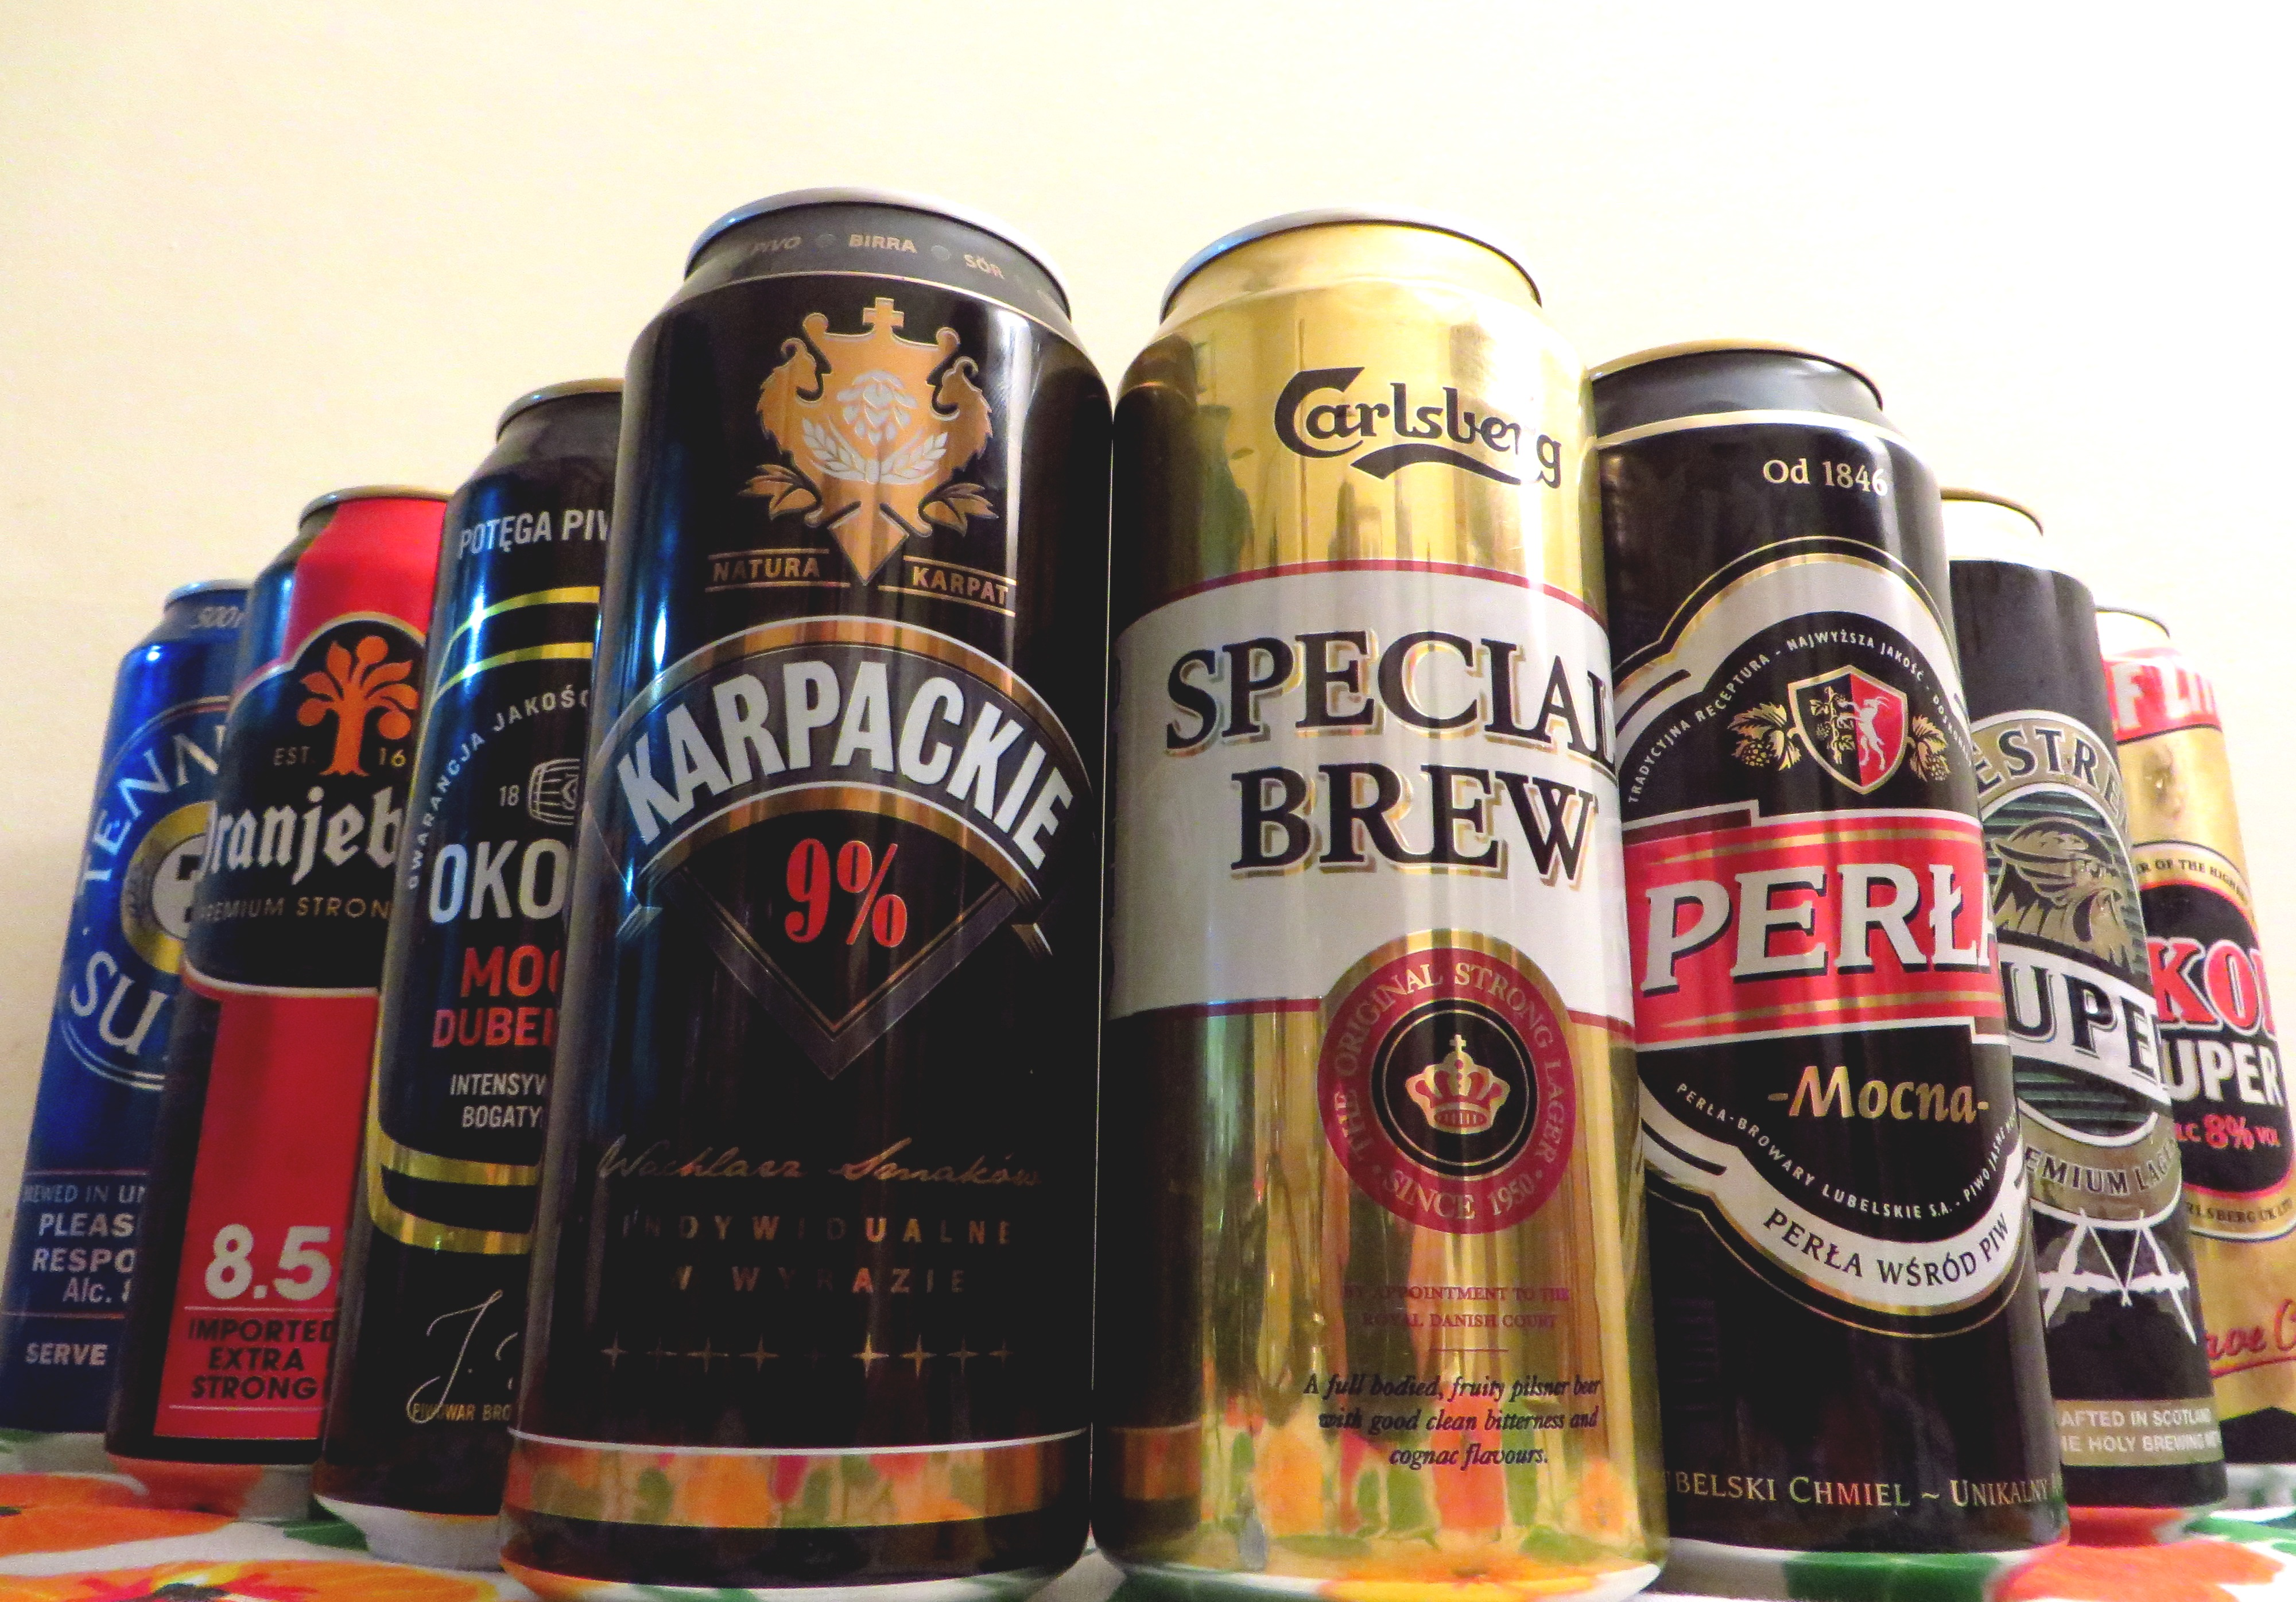 The 8 Best Super Strength Lagers We Found In Our Local Off License |  Special Brews MCR | Manchester Student Beer Blog